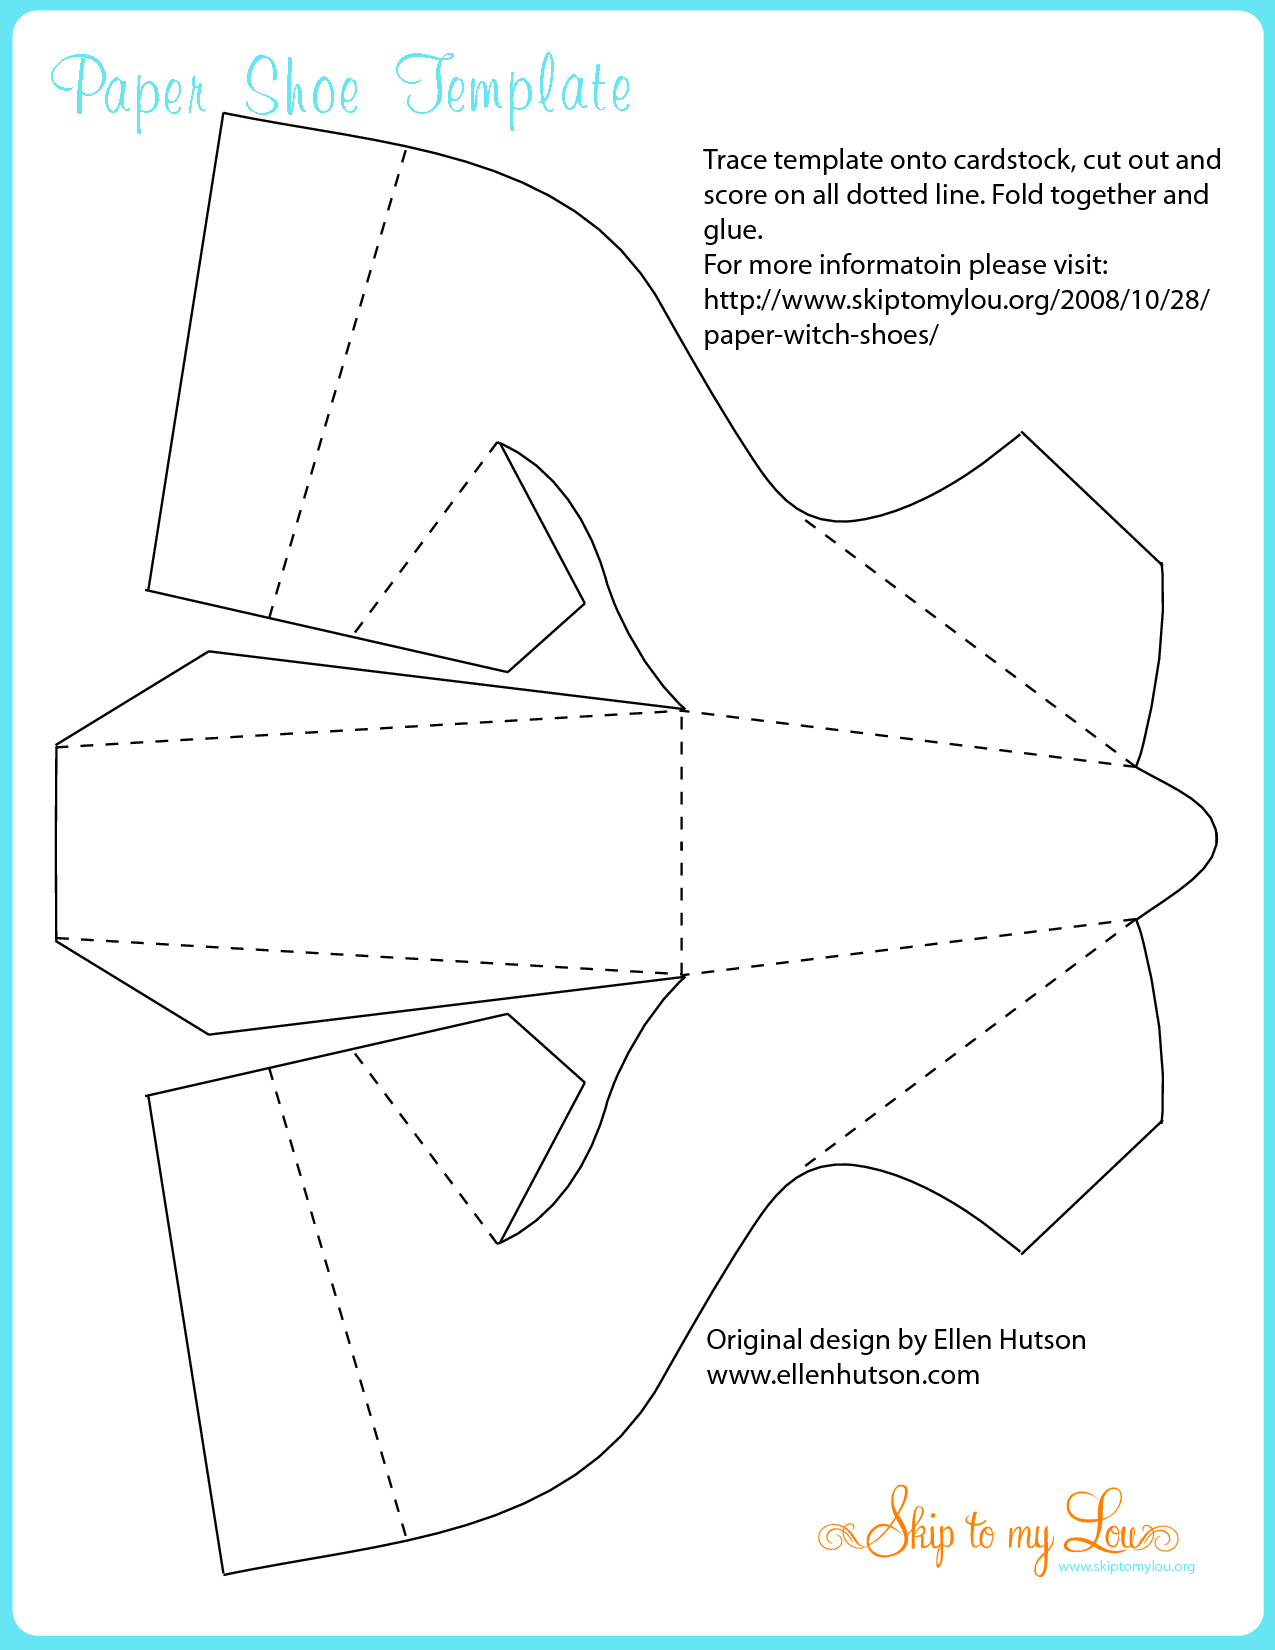 Decorative witches shoes trace template onto cardstock for Paper witch hat template